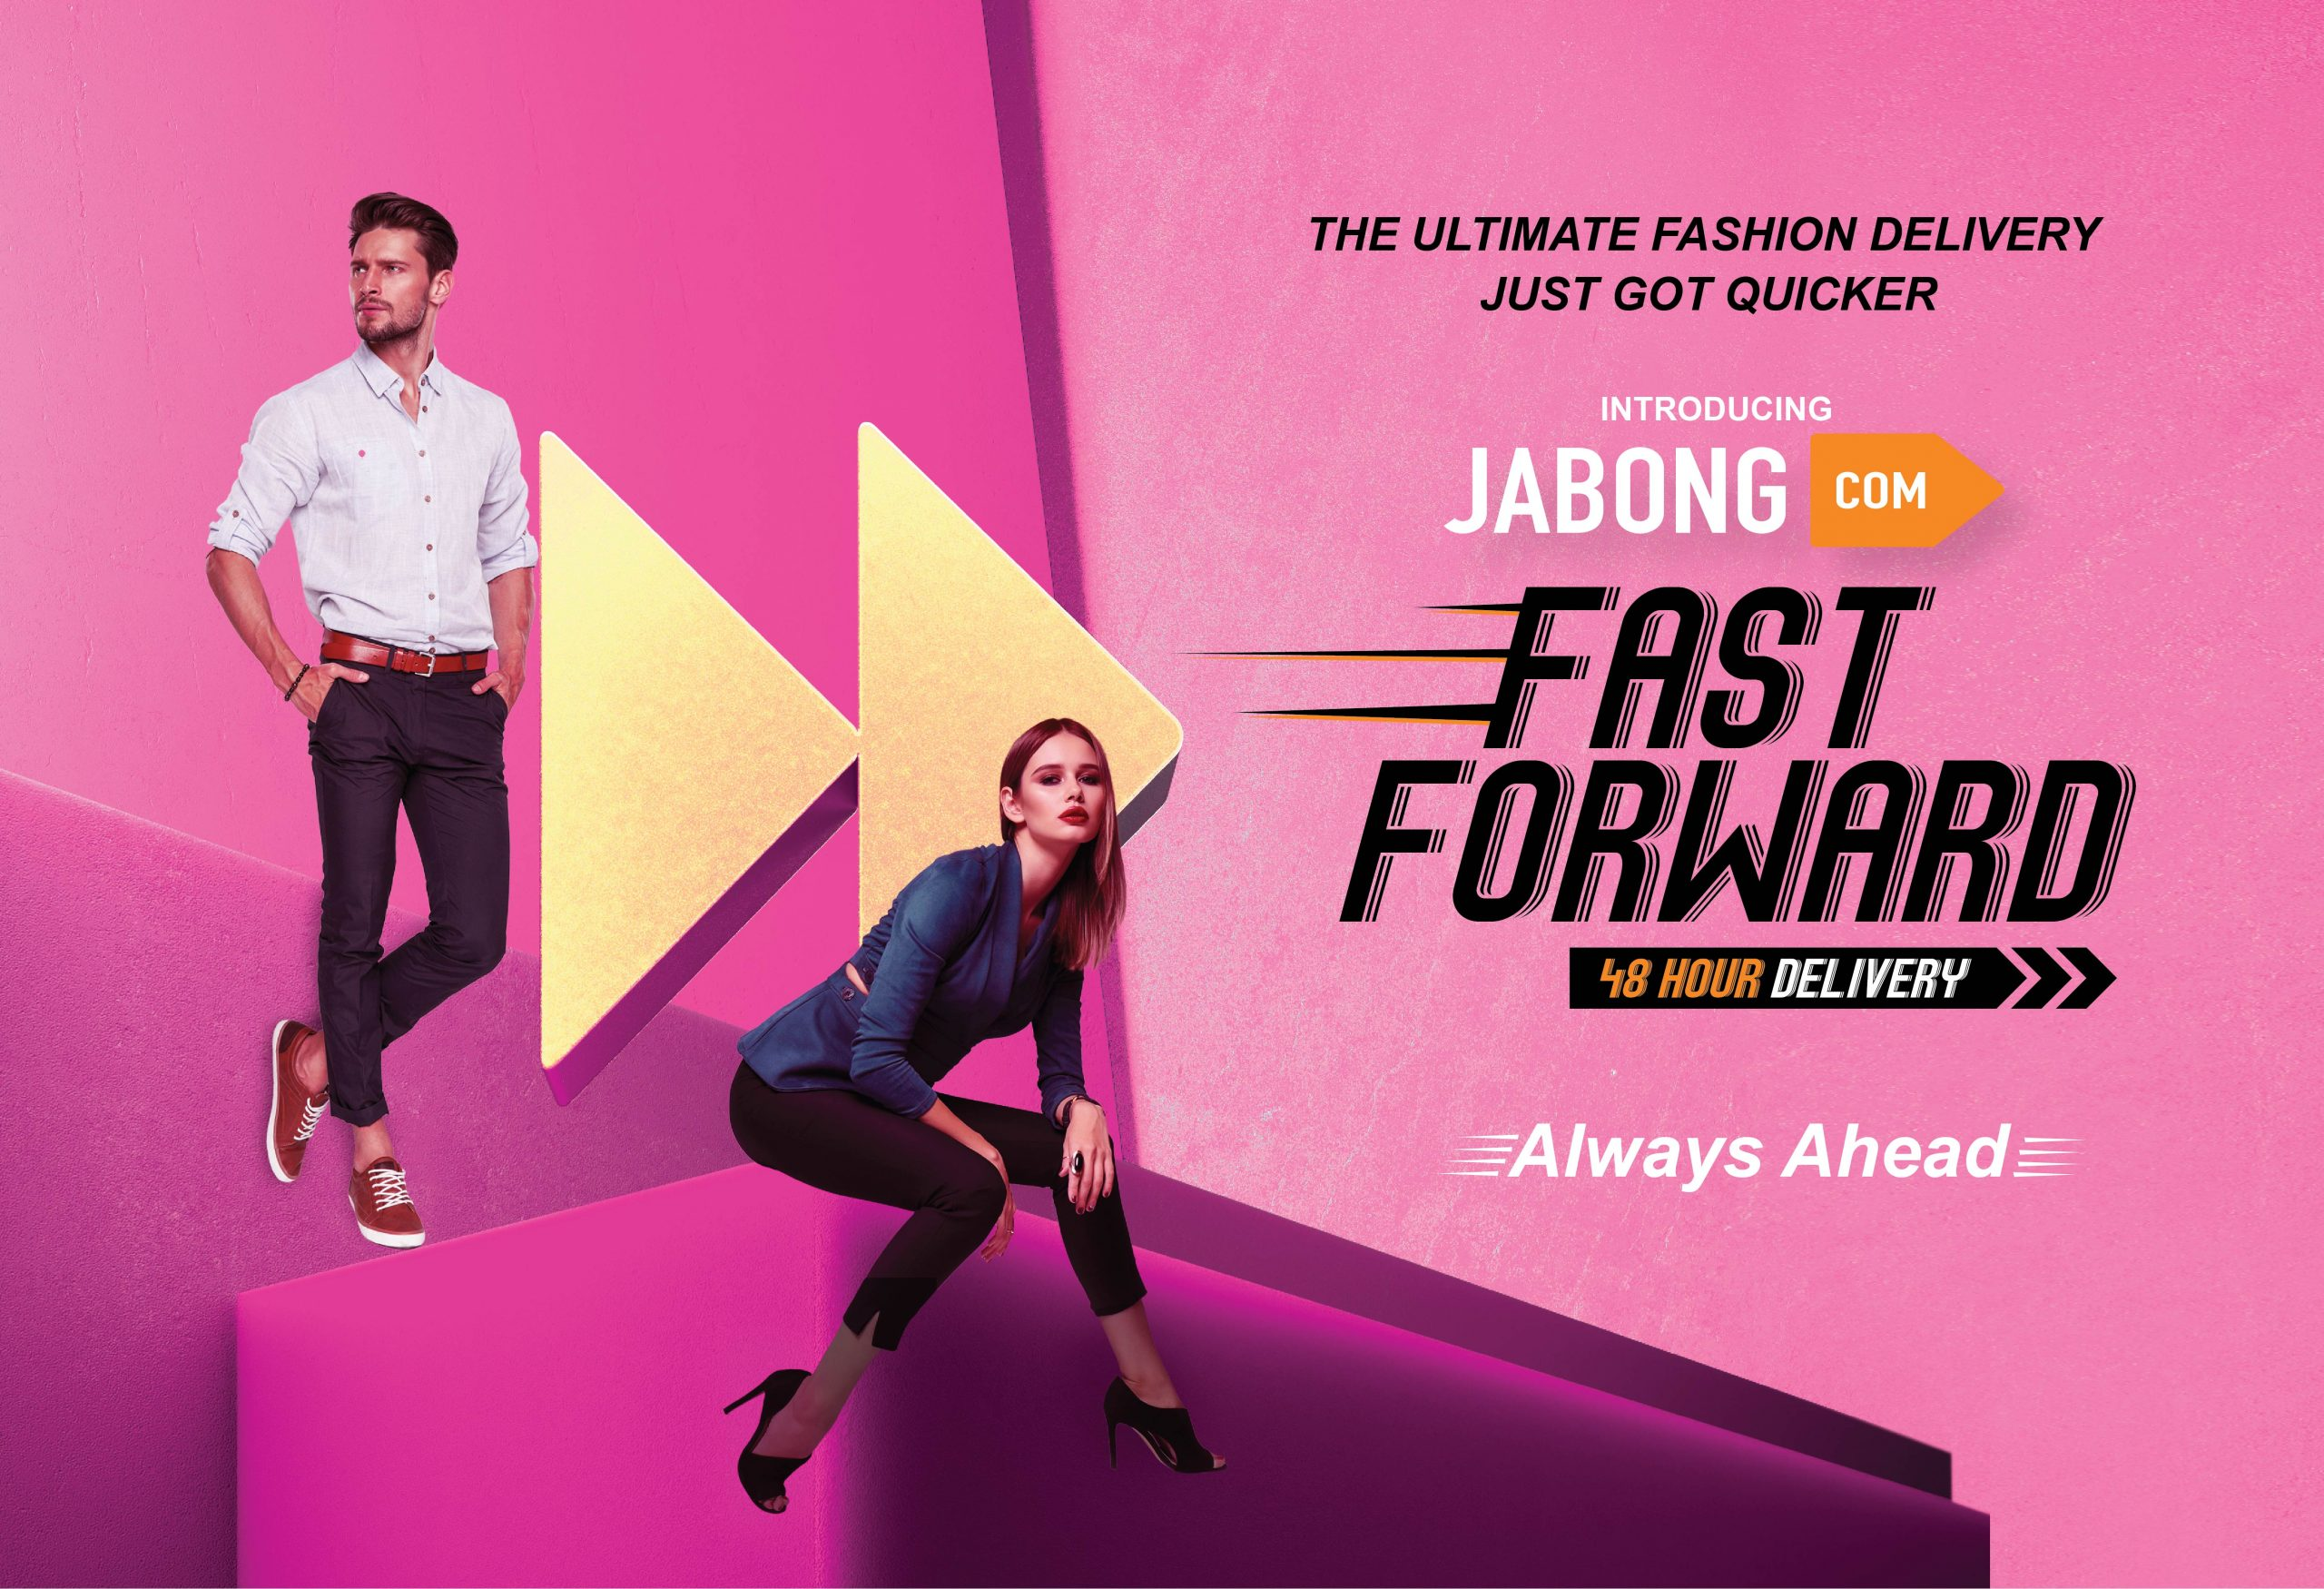 jabong 2day delivery_campaign-09